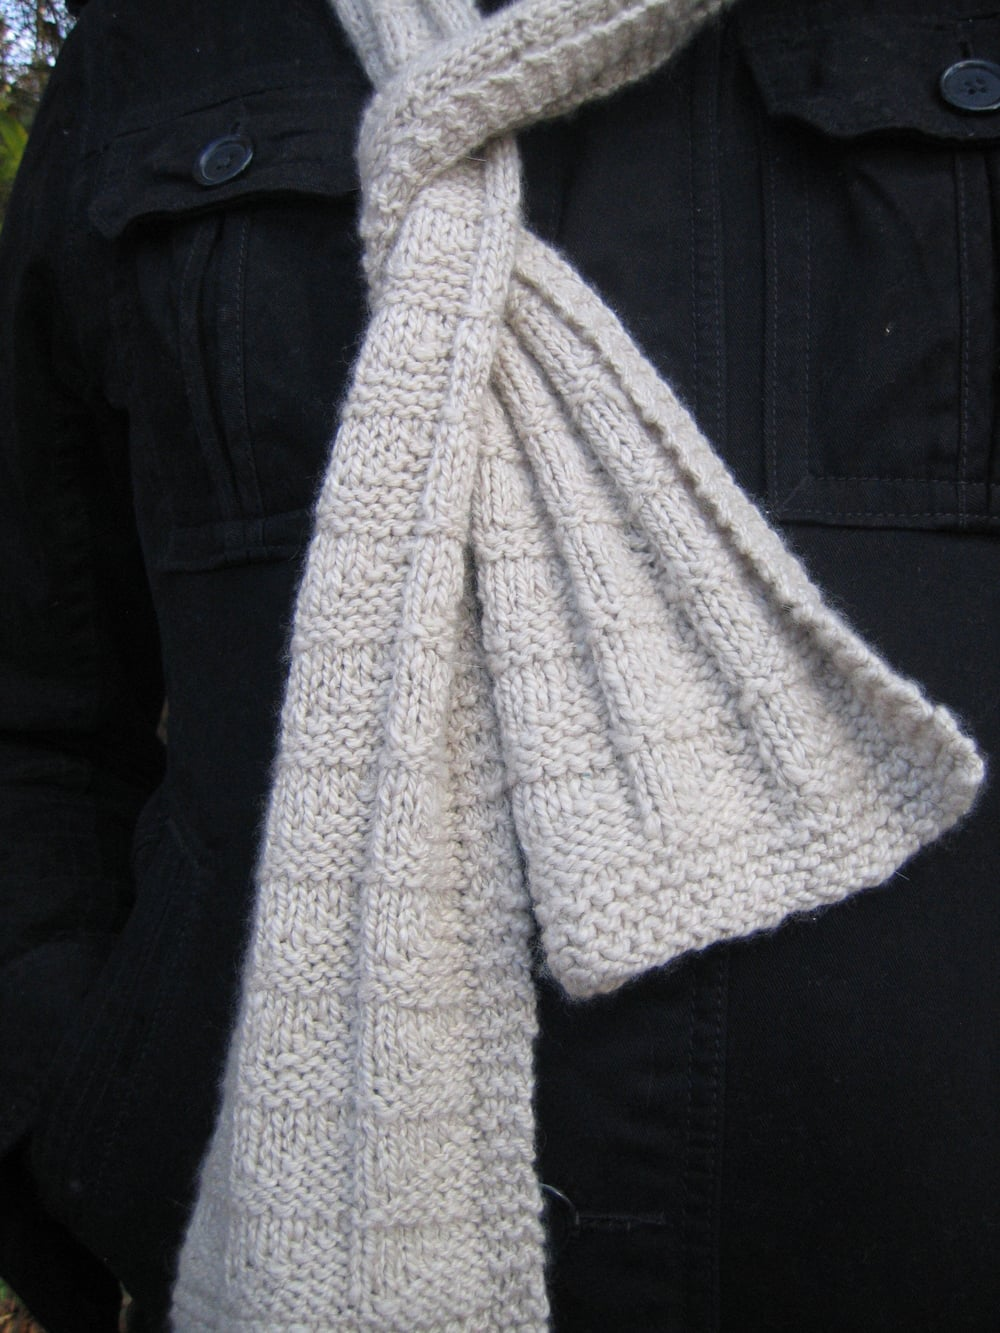 Sailor Scarf by Nancy cavender